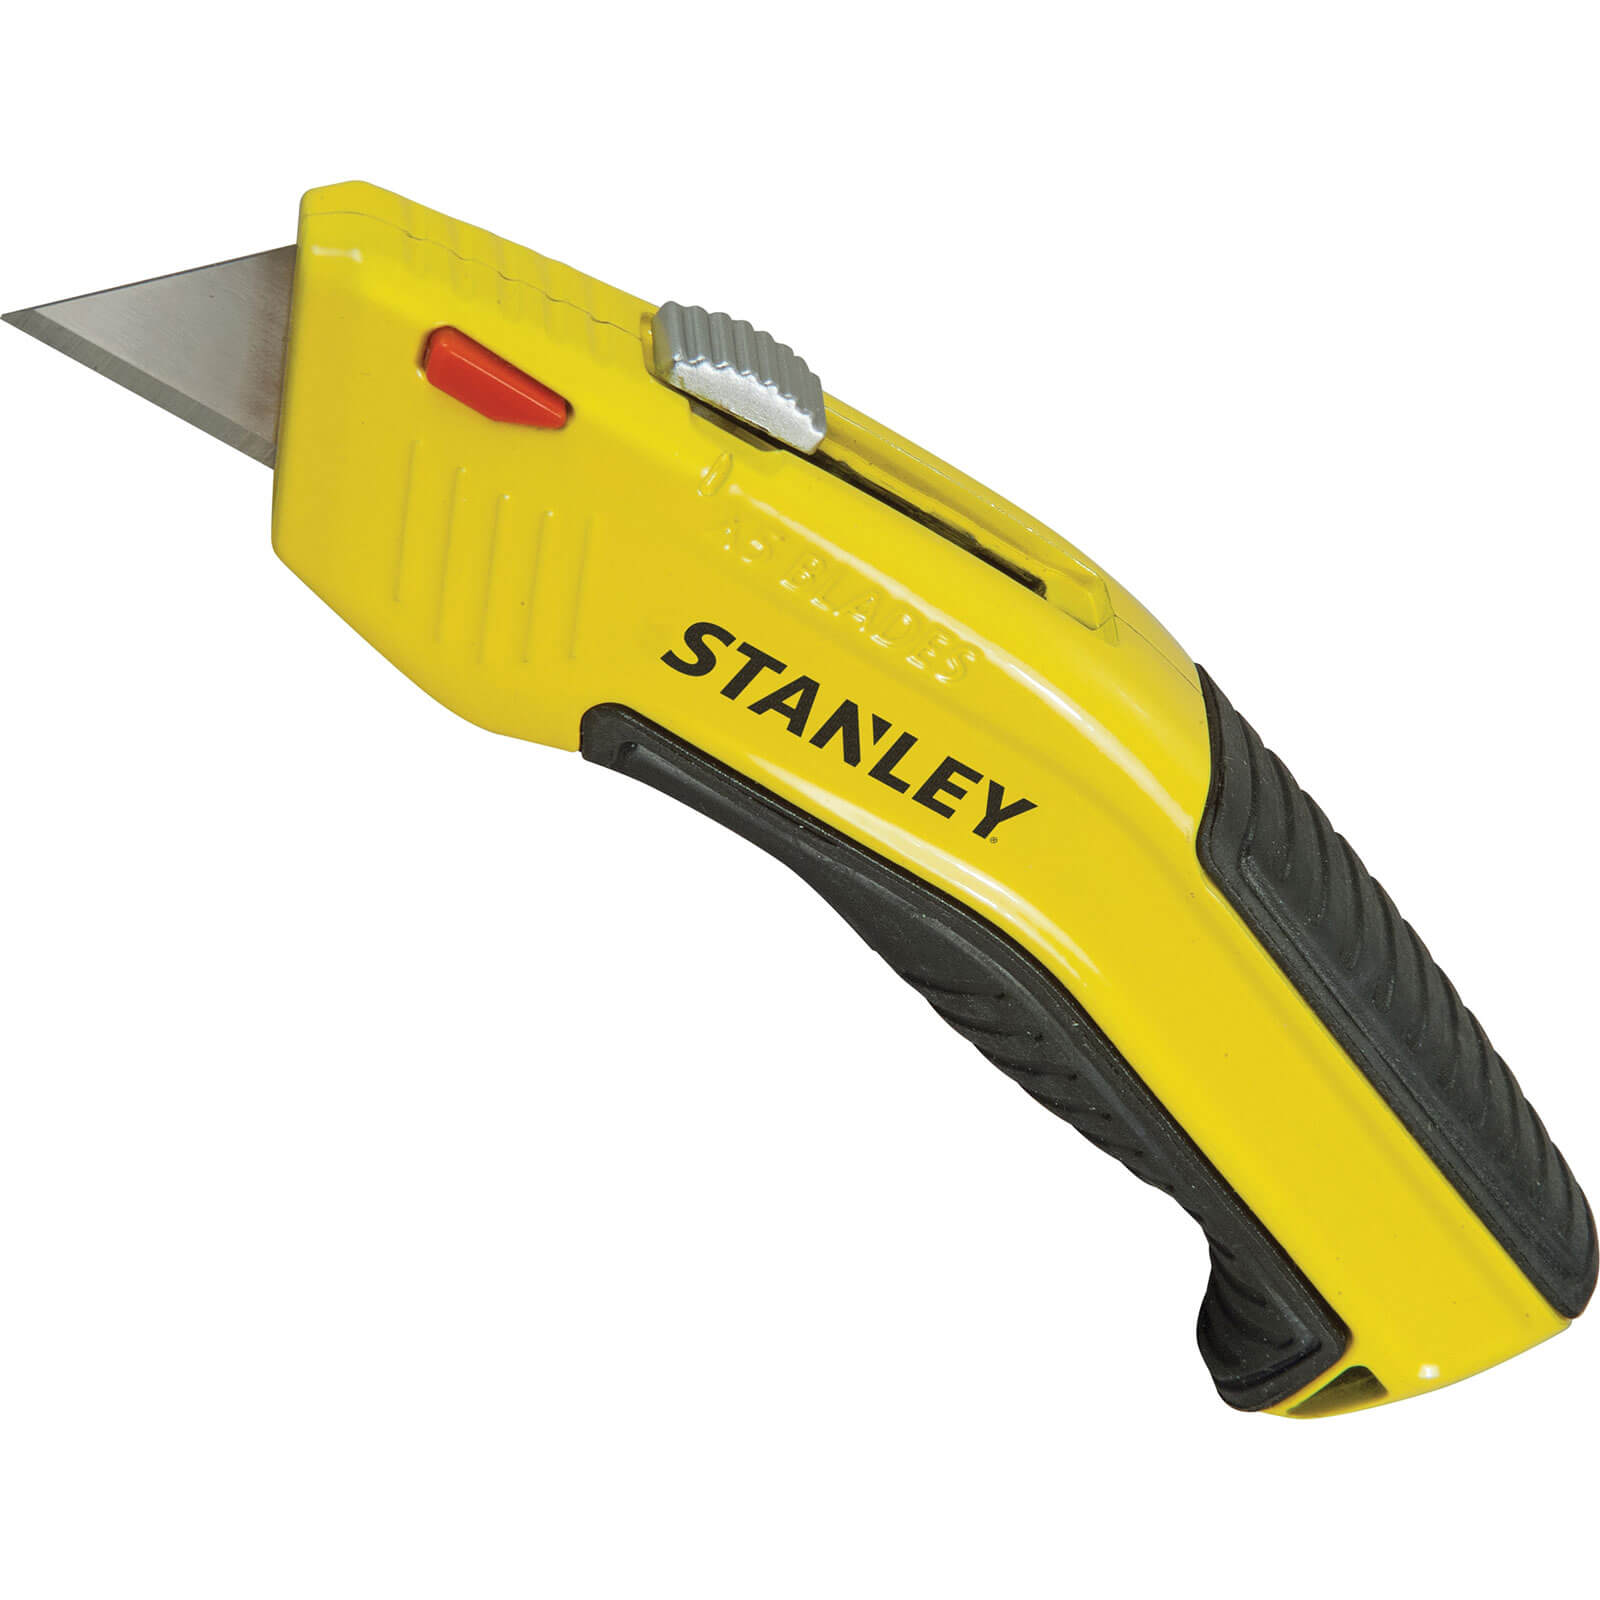 Stanley Black & Decker transforms work with support from Loggly